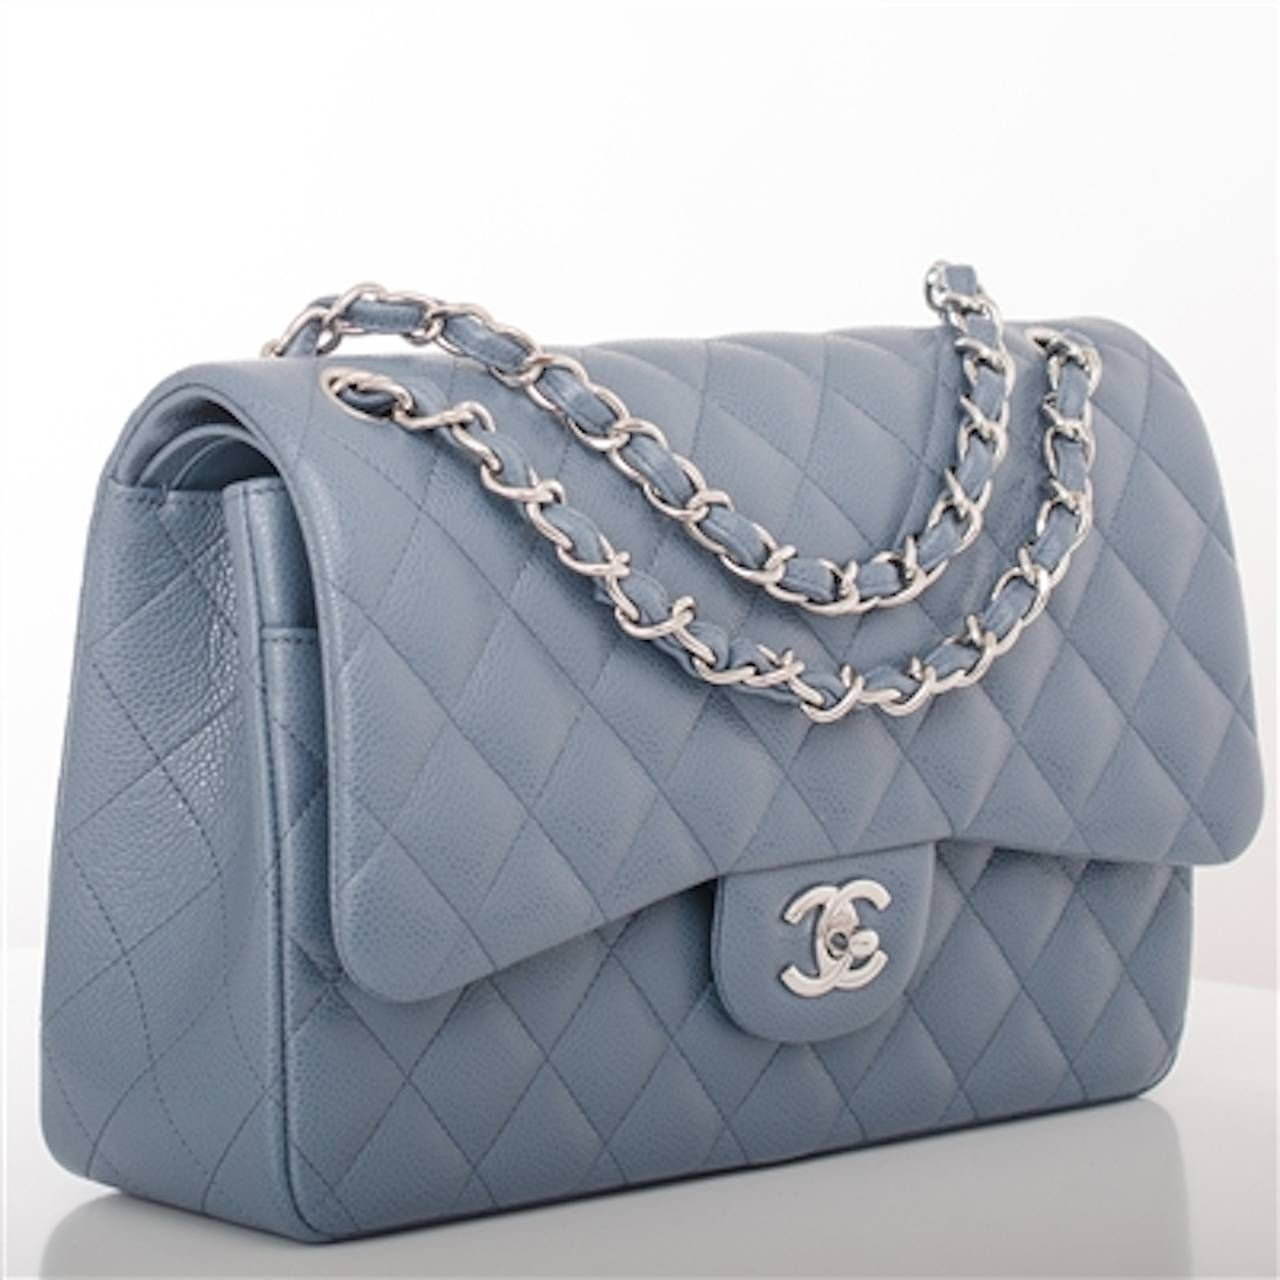 Chanel Blue Quilted Caviar Jumbo Classic 2.55 Double Flap Bag ... 48526a422941d